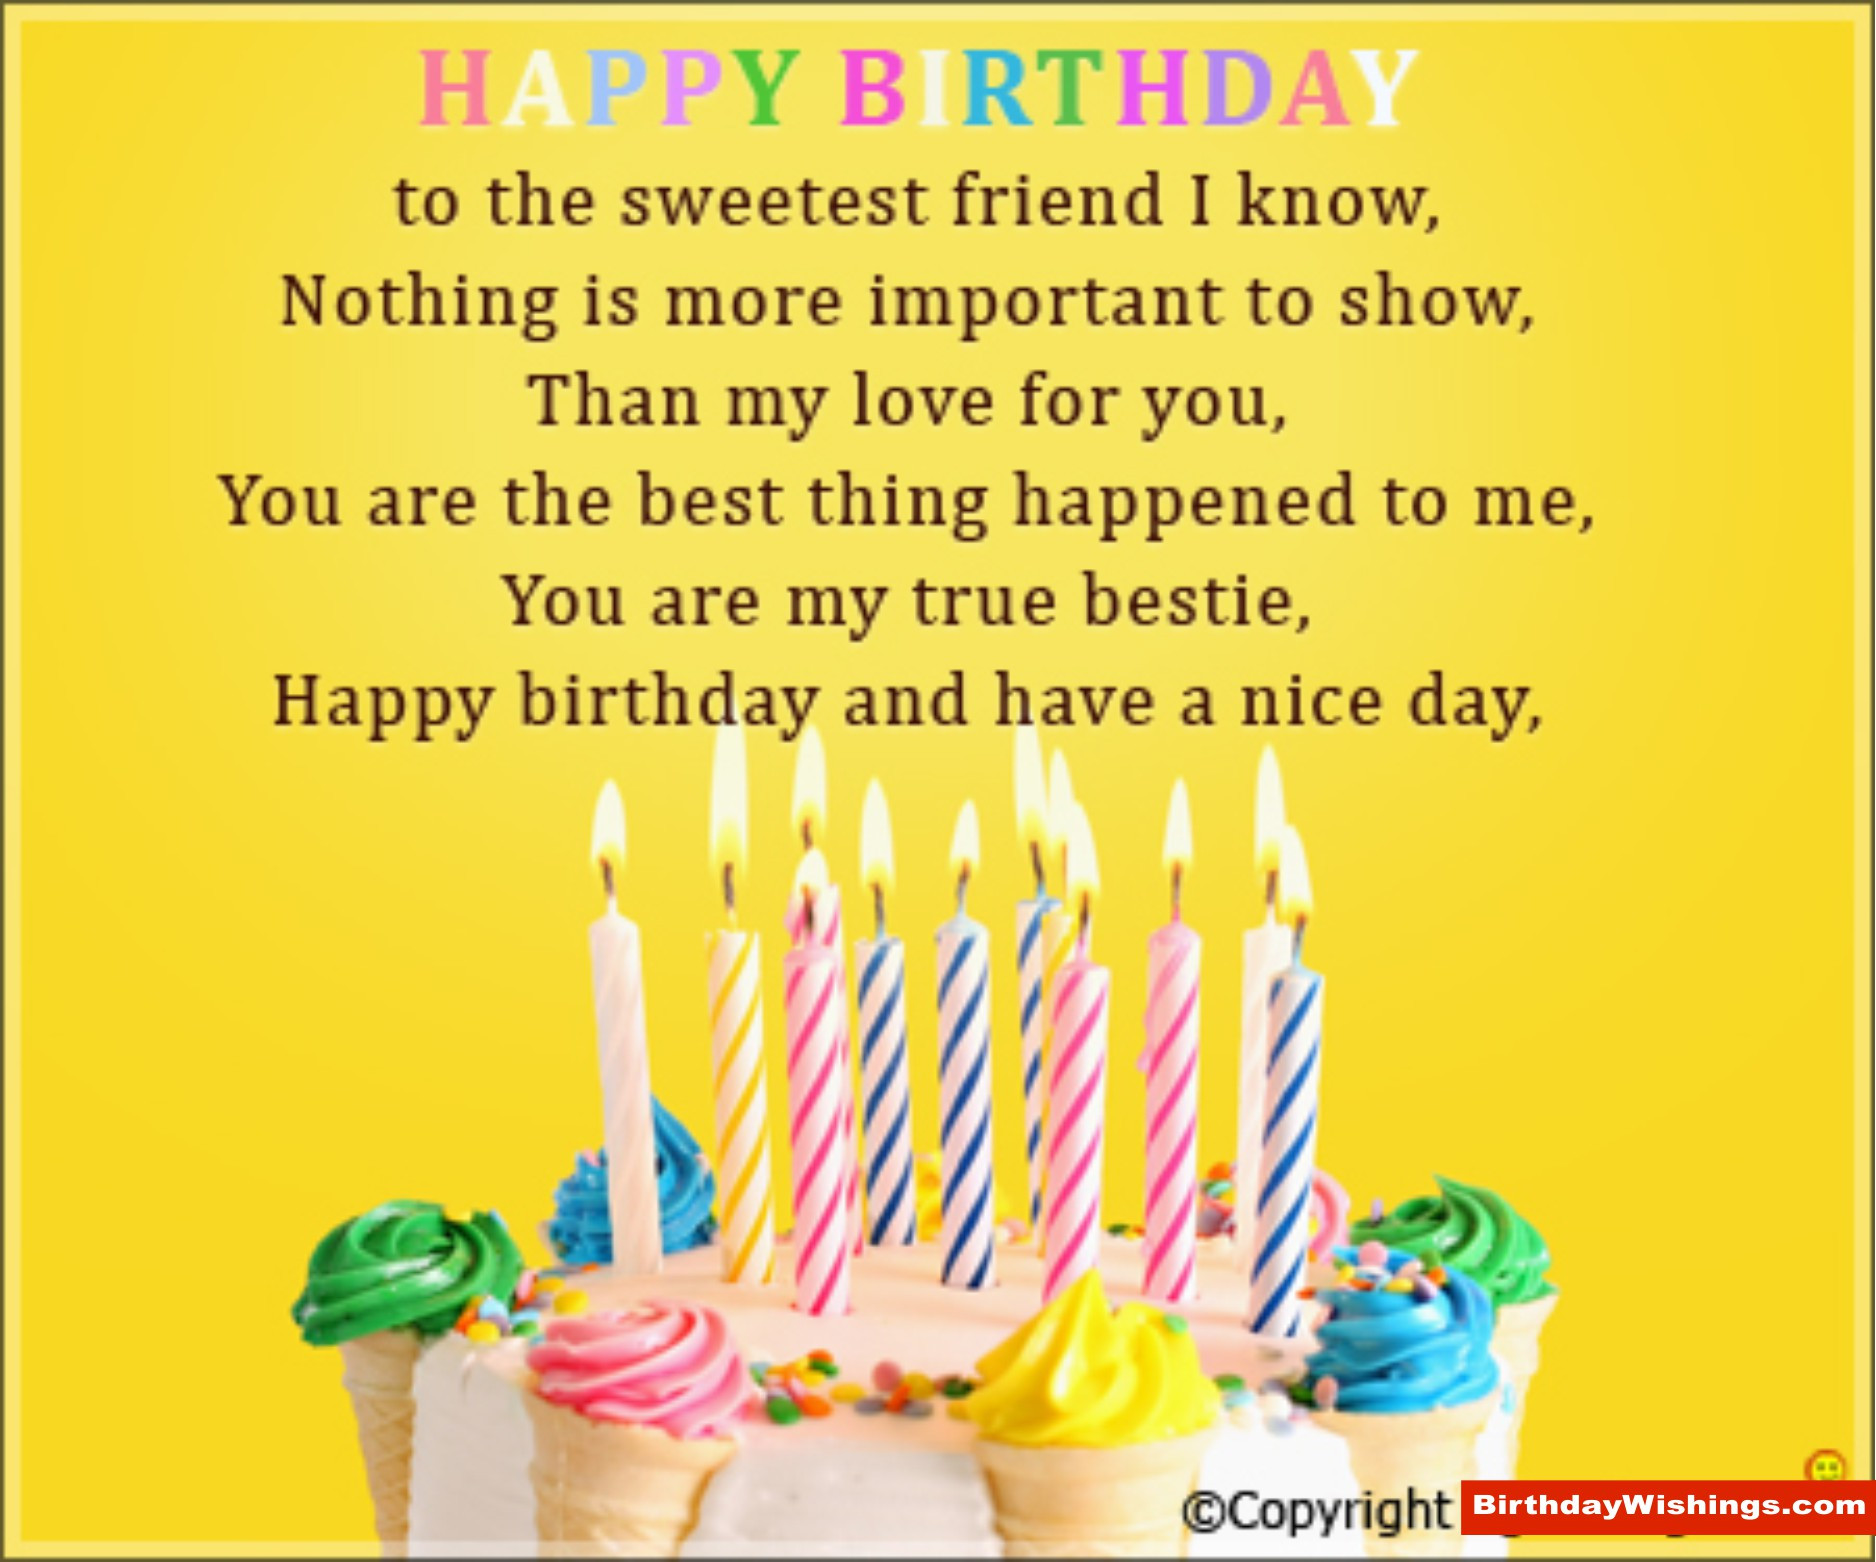 Best ideas about Sweetest Happy Birthday Quotes . Save or Pin Birthday Poem For Sweet Friend BirthdayWishings Now.